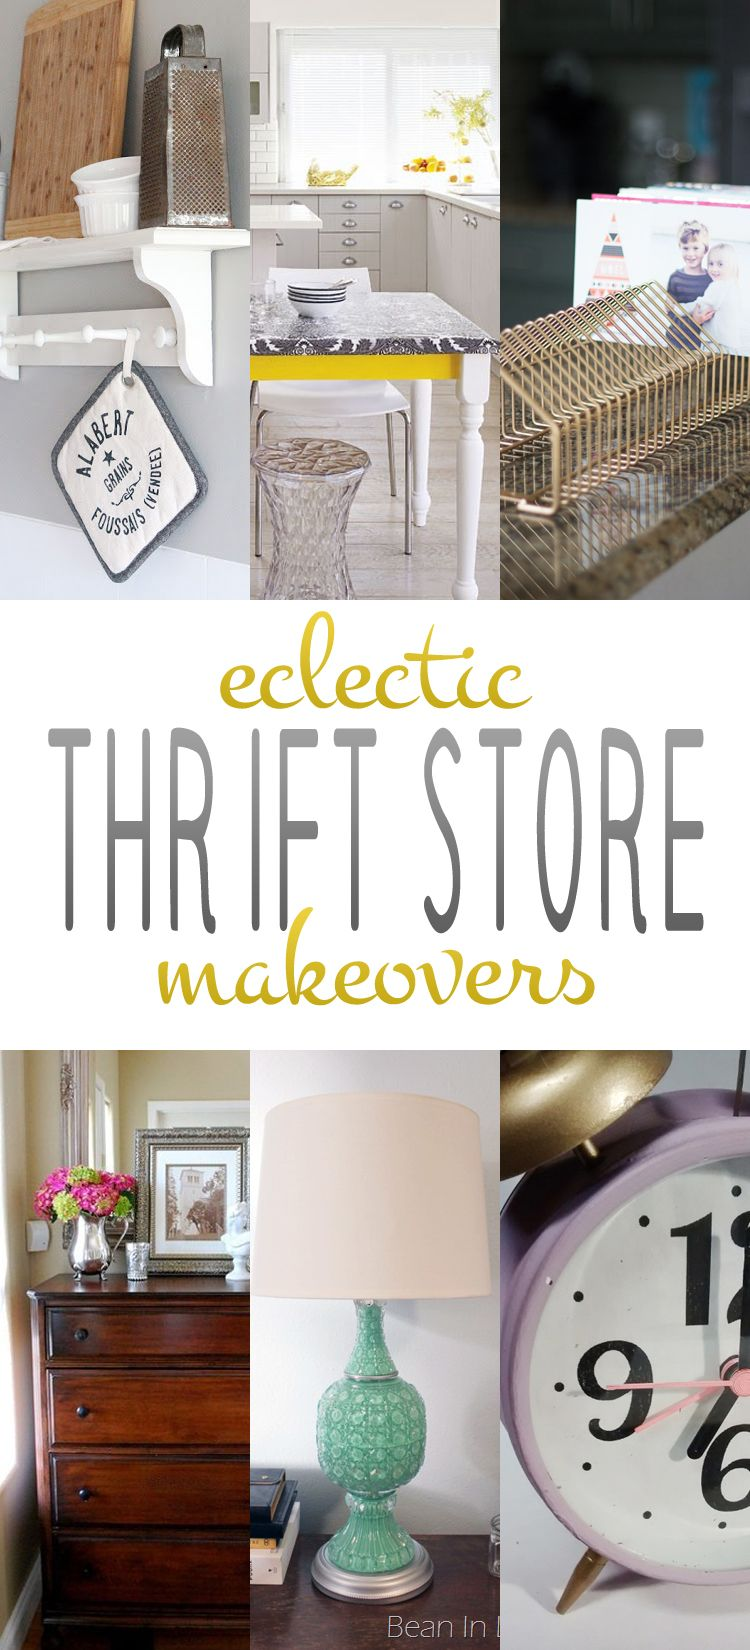 eclectic thrift store makeovers diy home decor pinterest diy idee deco et decoration. Black Bedroom Furniture Sets. Home Design Ideas